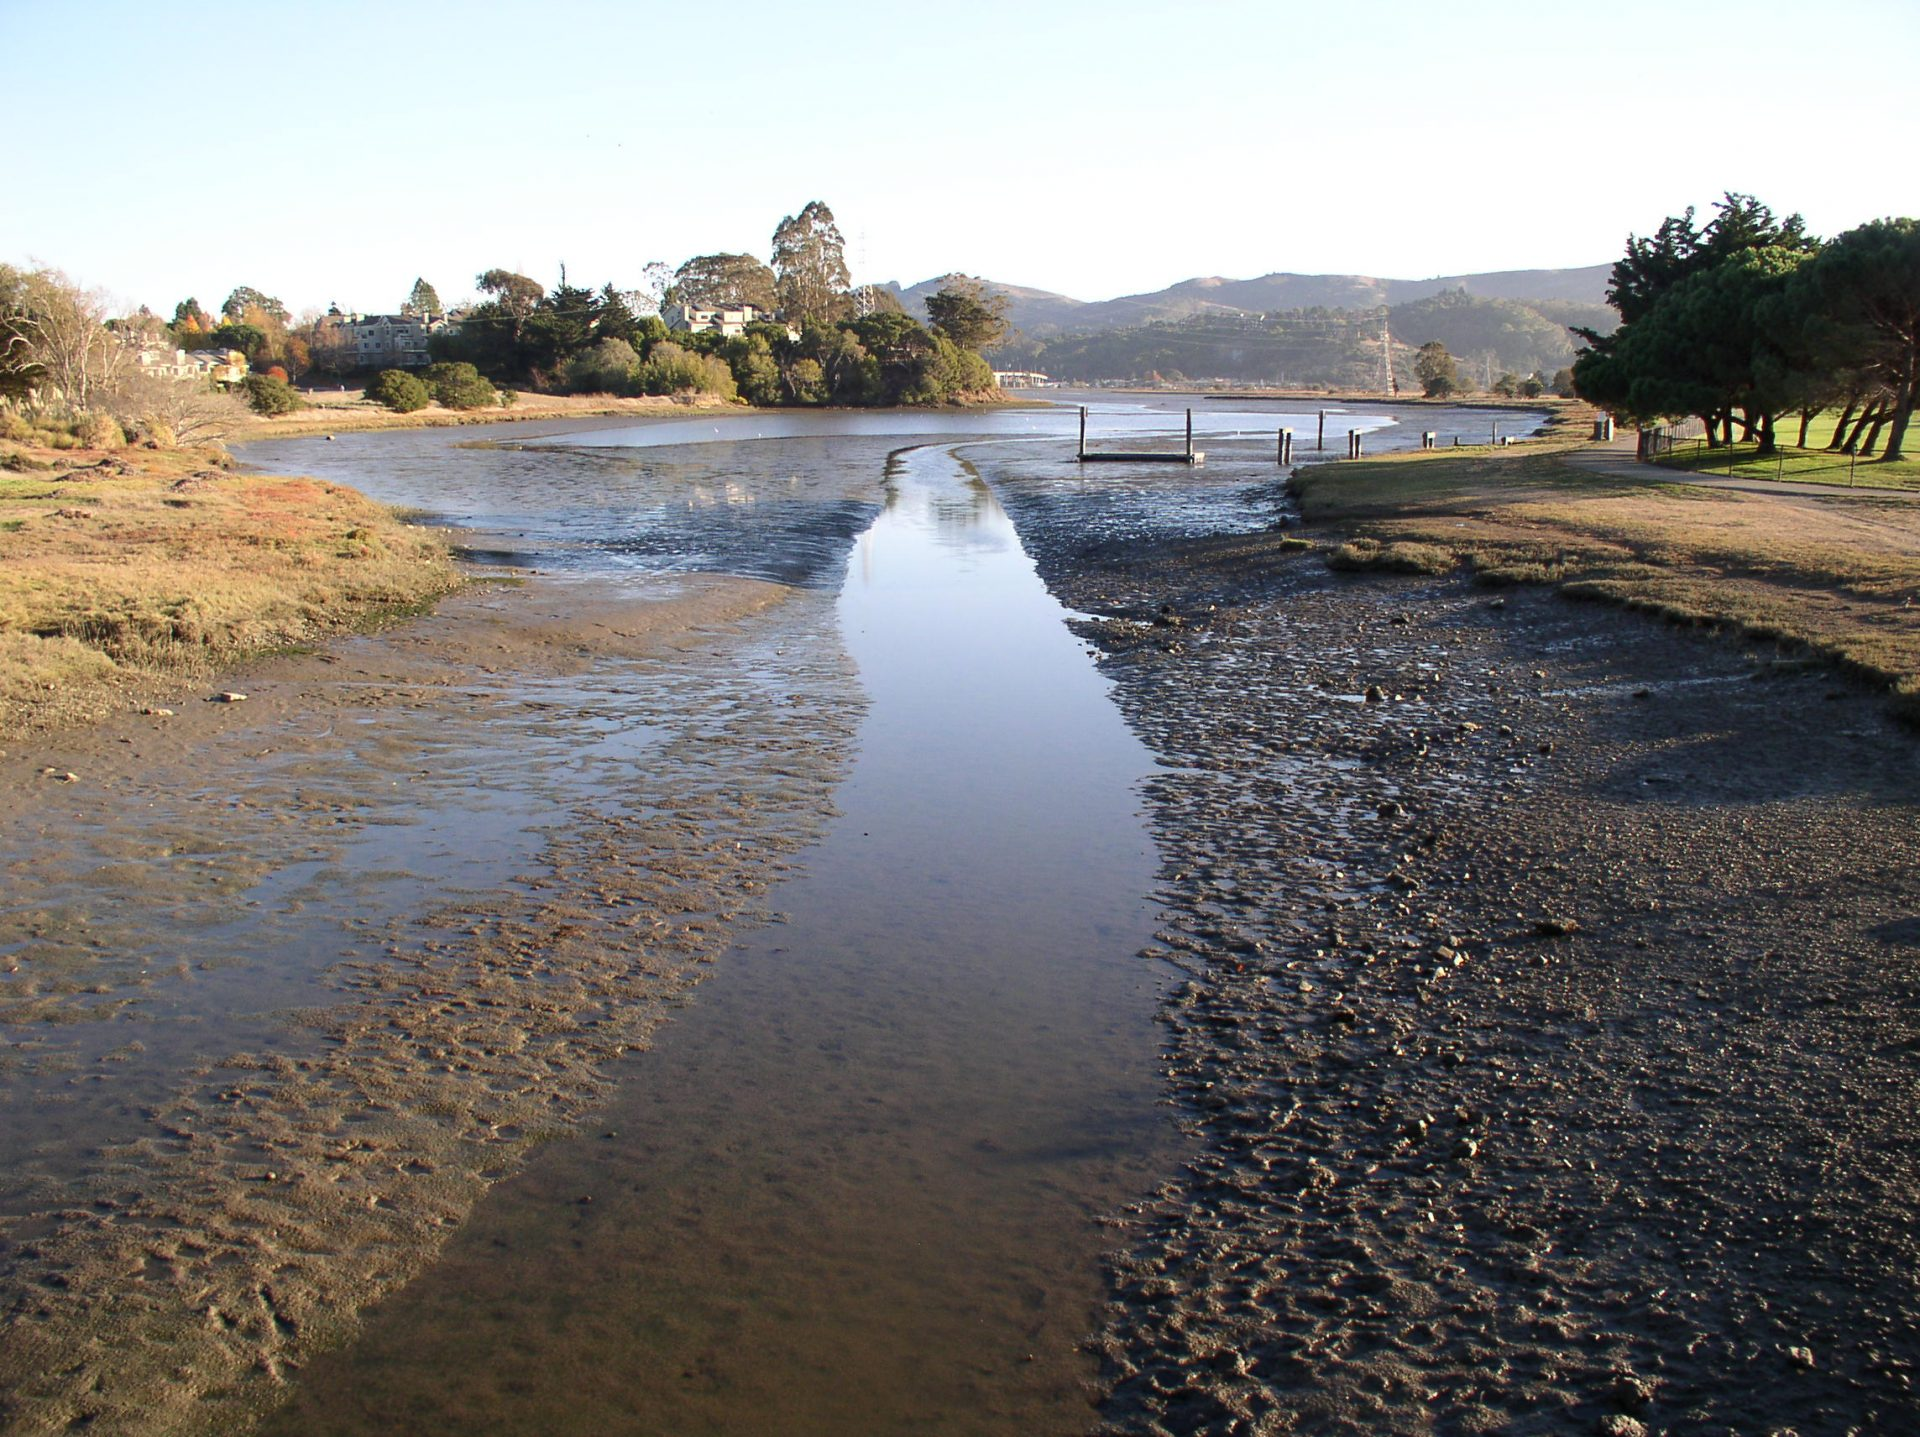 low tide channel in center, mud flats on both sides